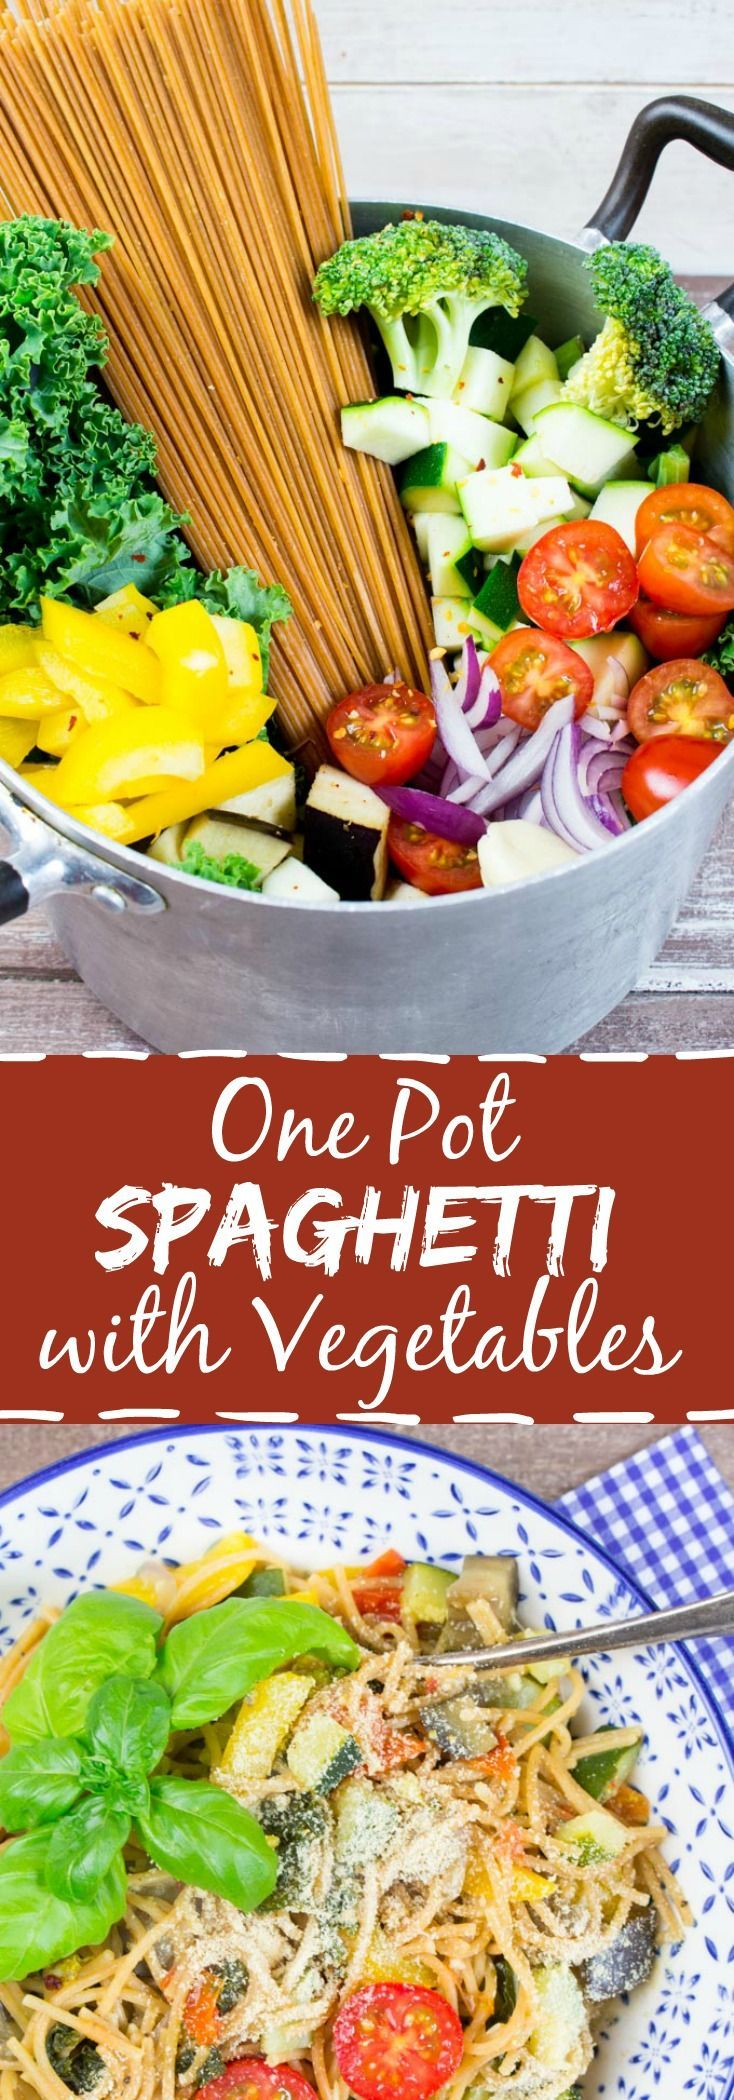 Vegan one pot spaghetti with vegetables. Tried 1-24-16